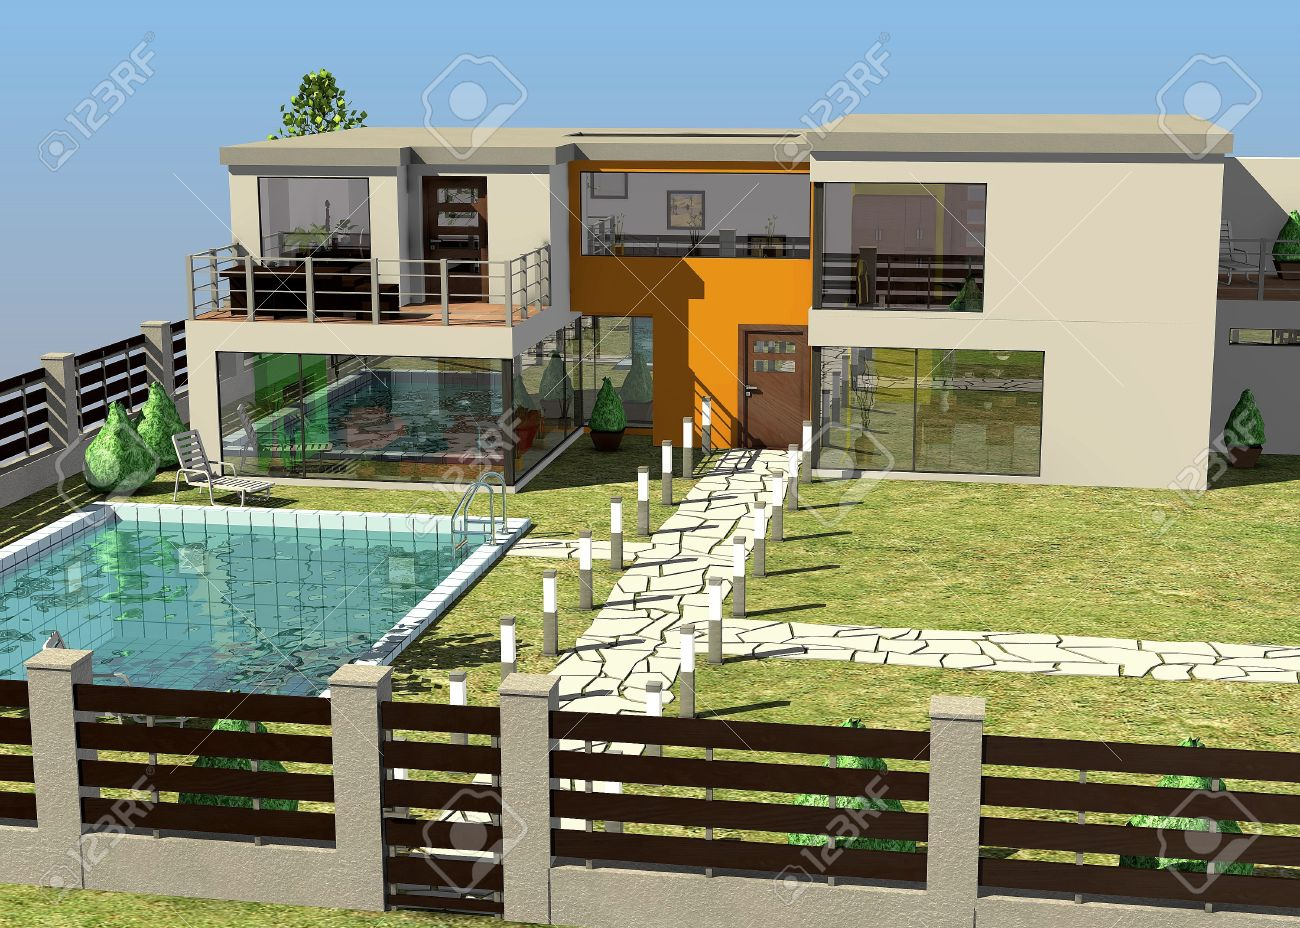 Architecture maison l 39 impression 3d for Architecte 3d plan maison architecture